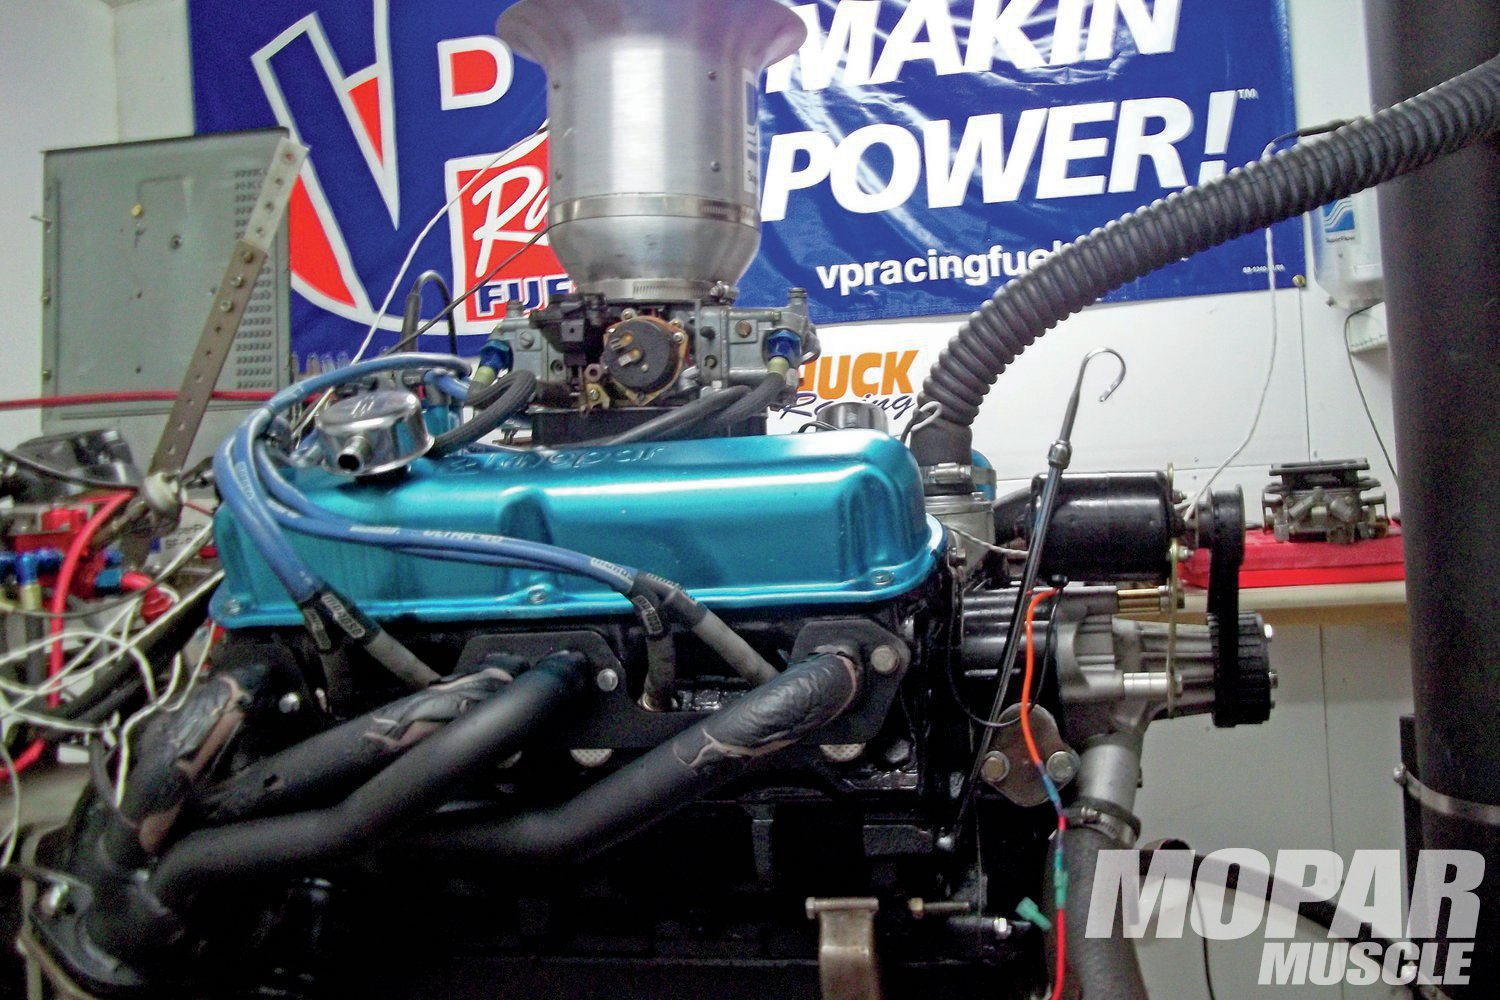 5 5. The Pace Setter shorty headers really are a nice improvement over a good flowing factory exhaust manifold. They fill the gap between manifolds and long tube headers, and give up surprisingly little power when considering the design constraints they are built around.